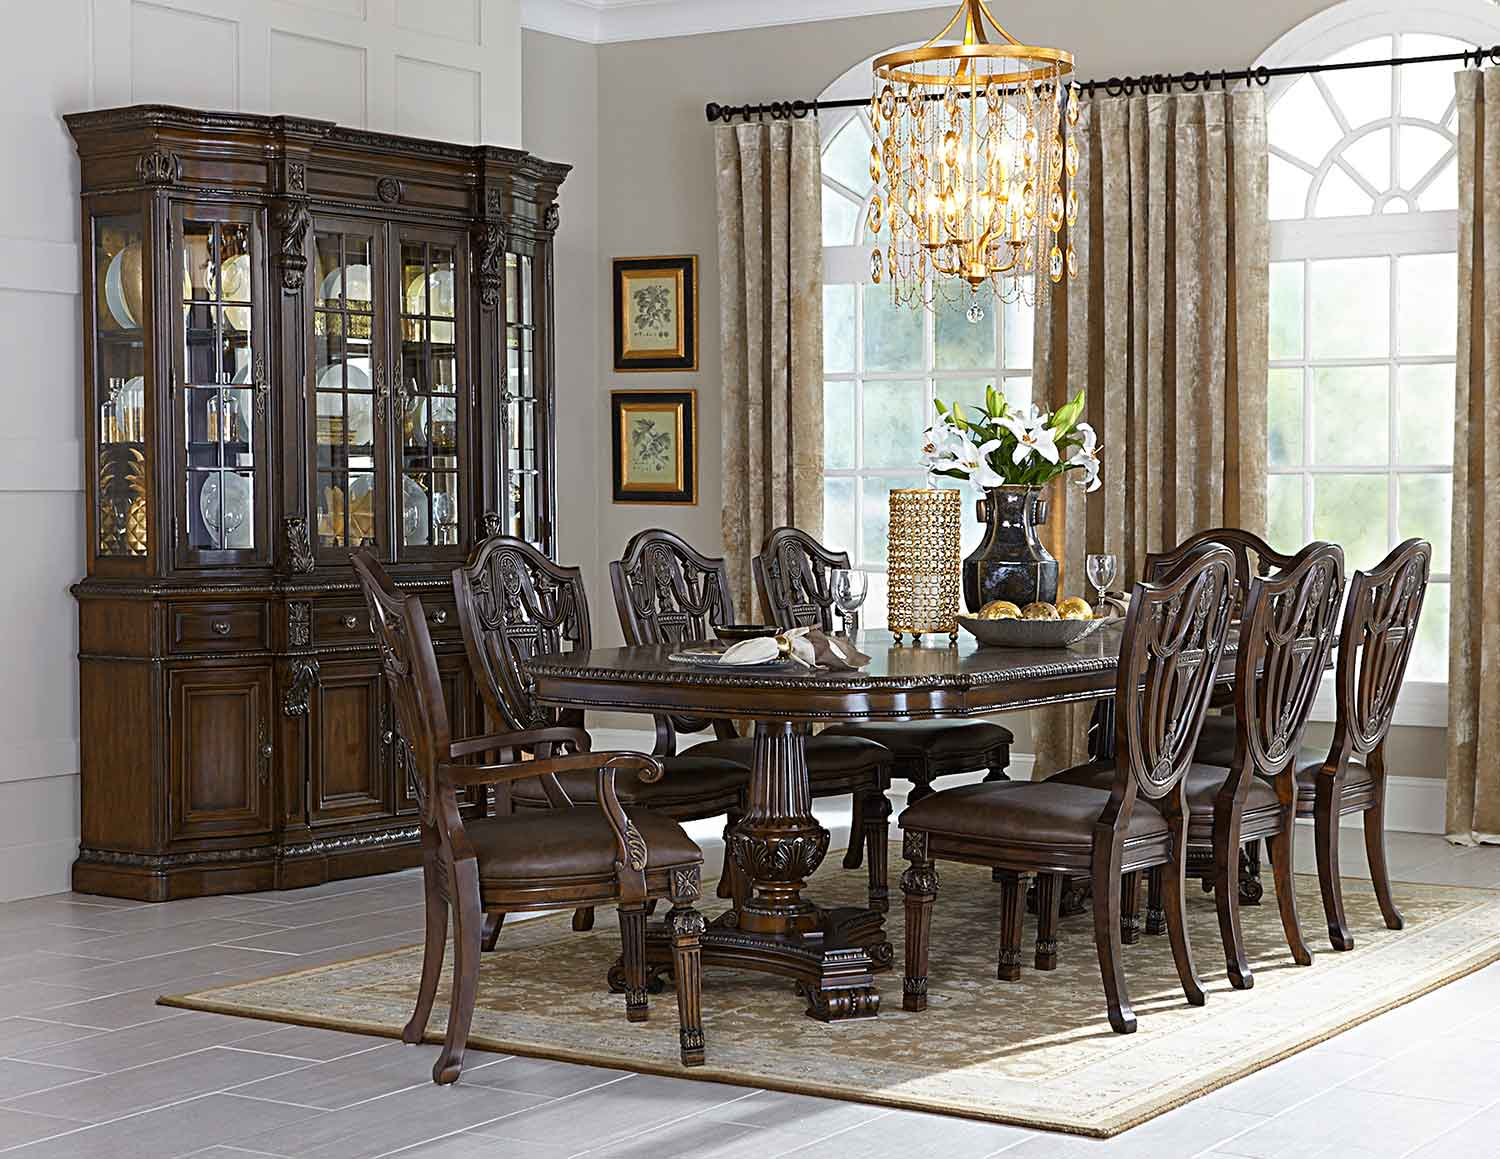 Homelegance Chilton Double Pedestal Dining Set - Cherry